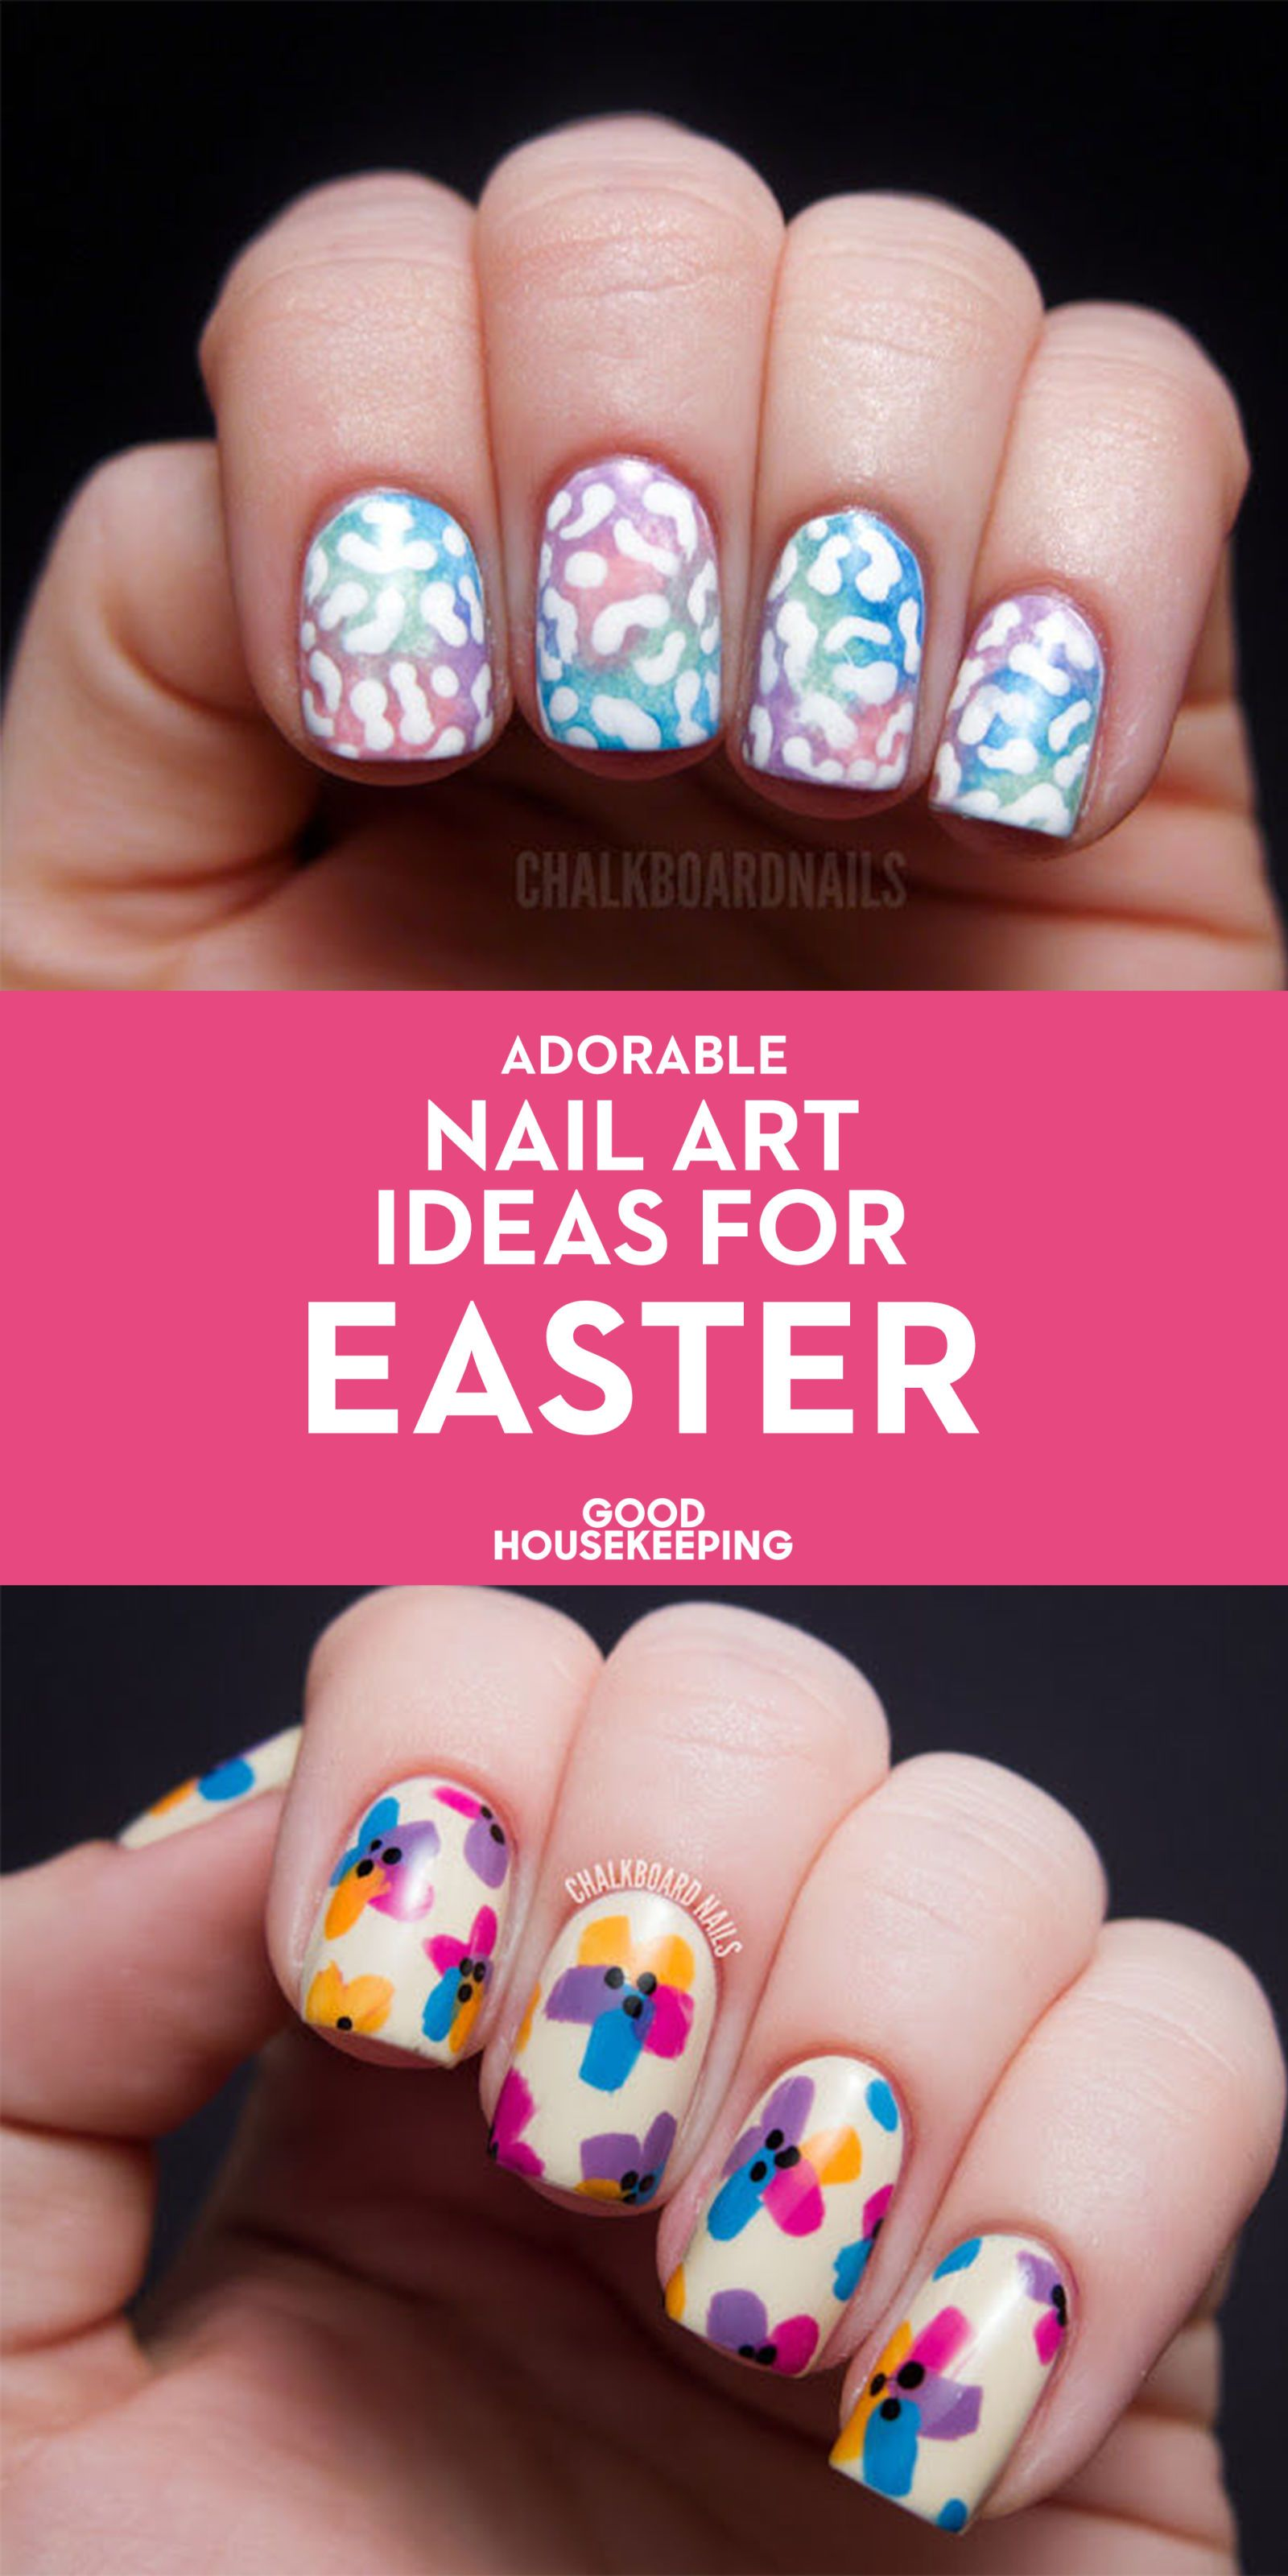 21 adorable nail art ideas for easter | nail art, spring and art